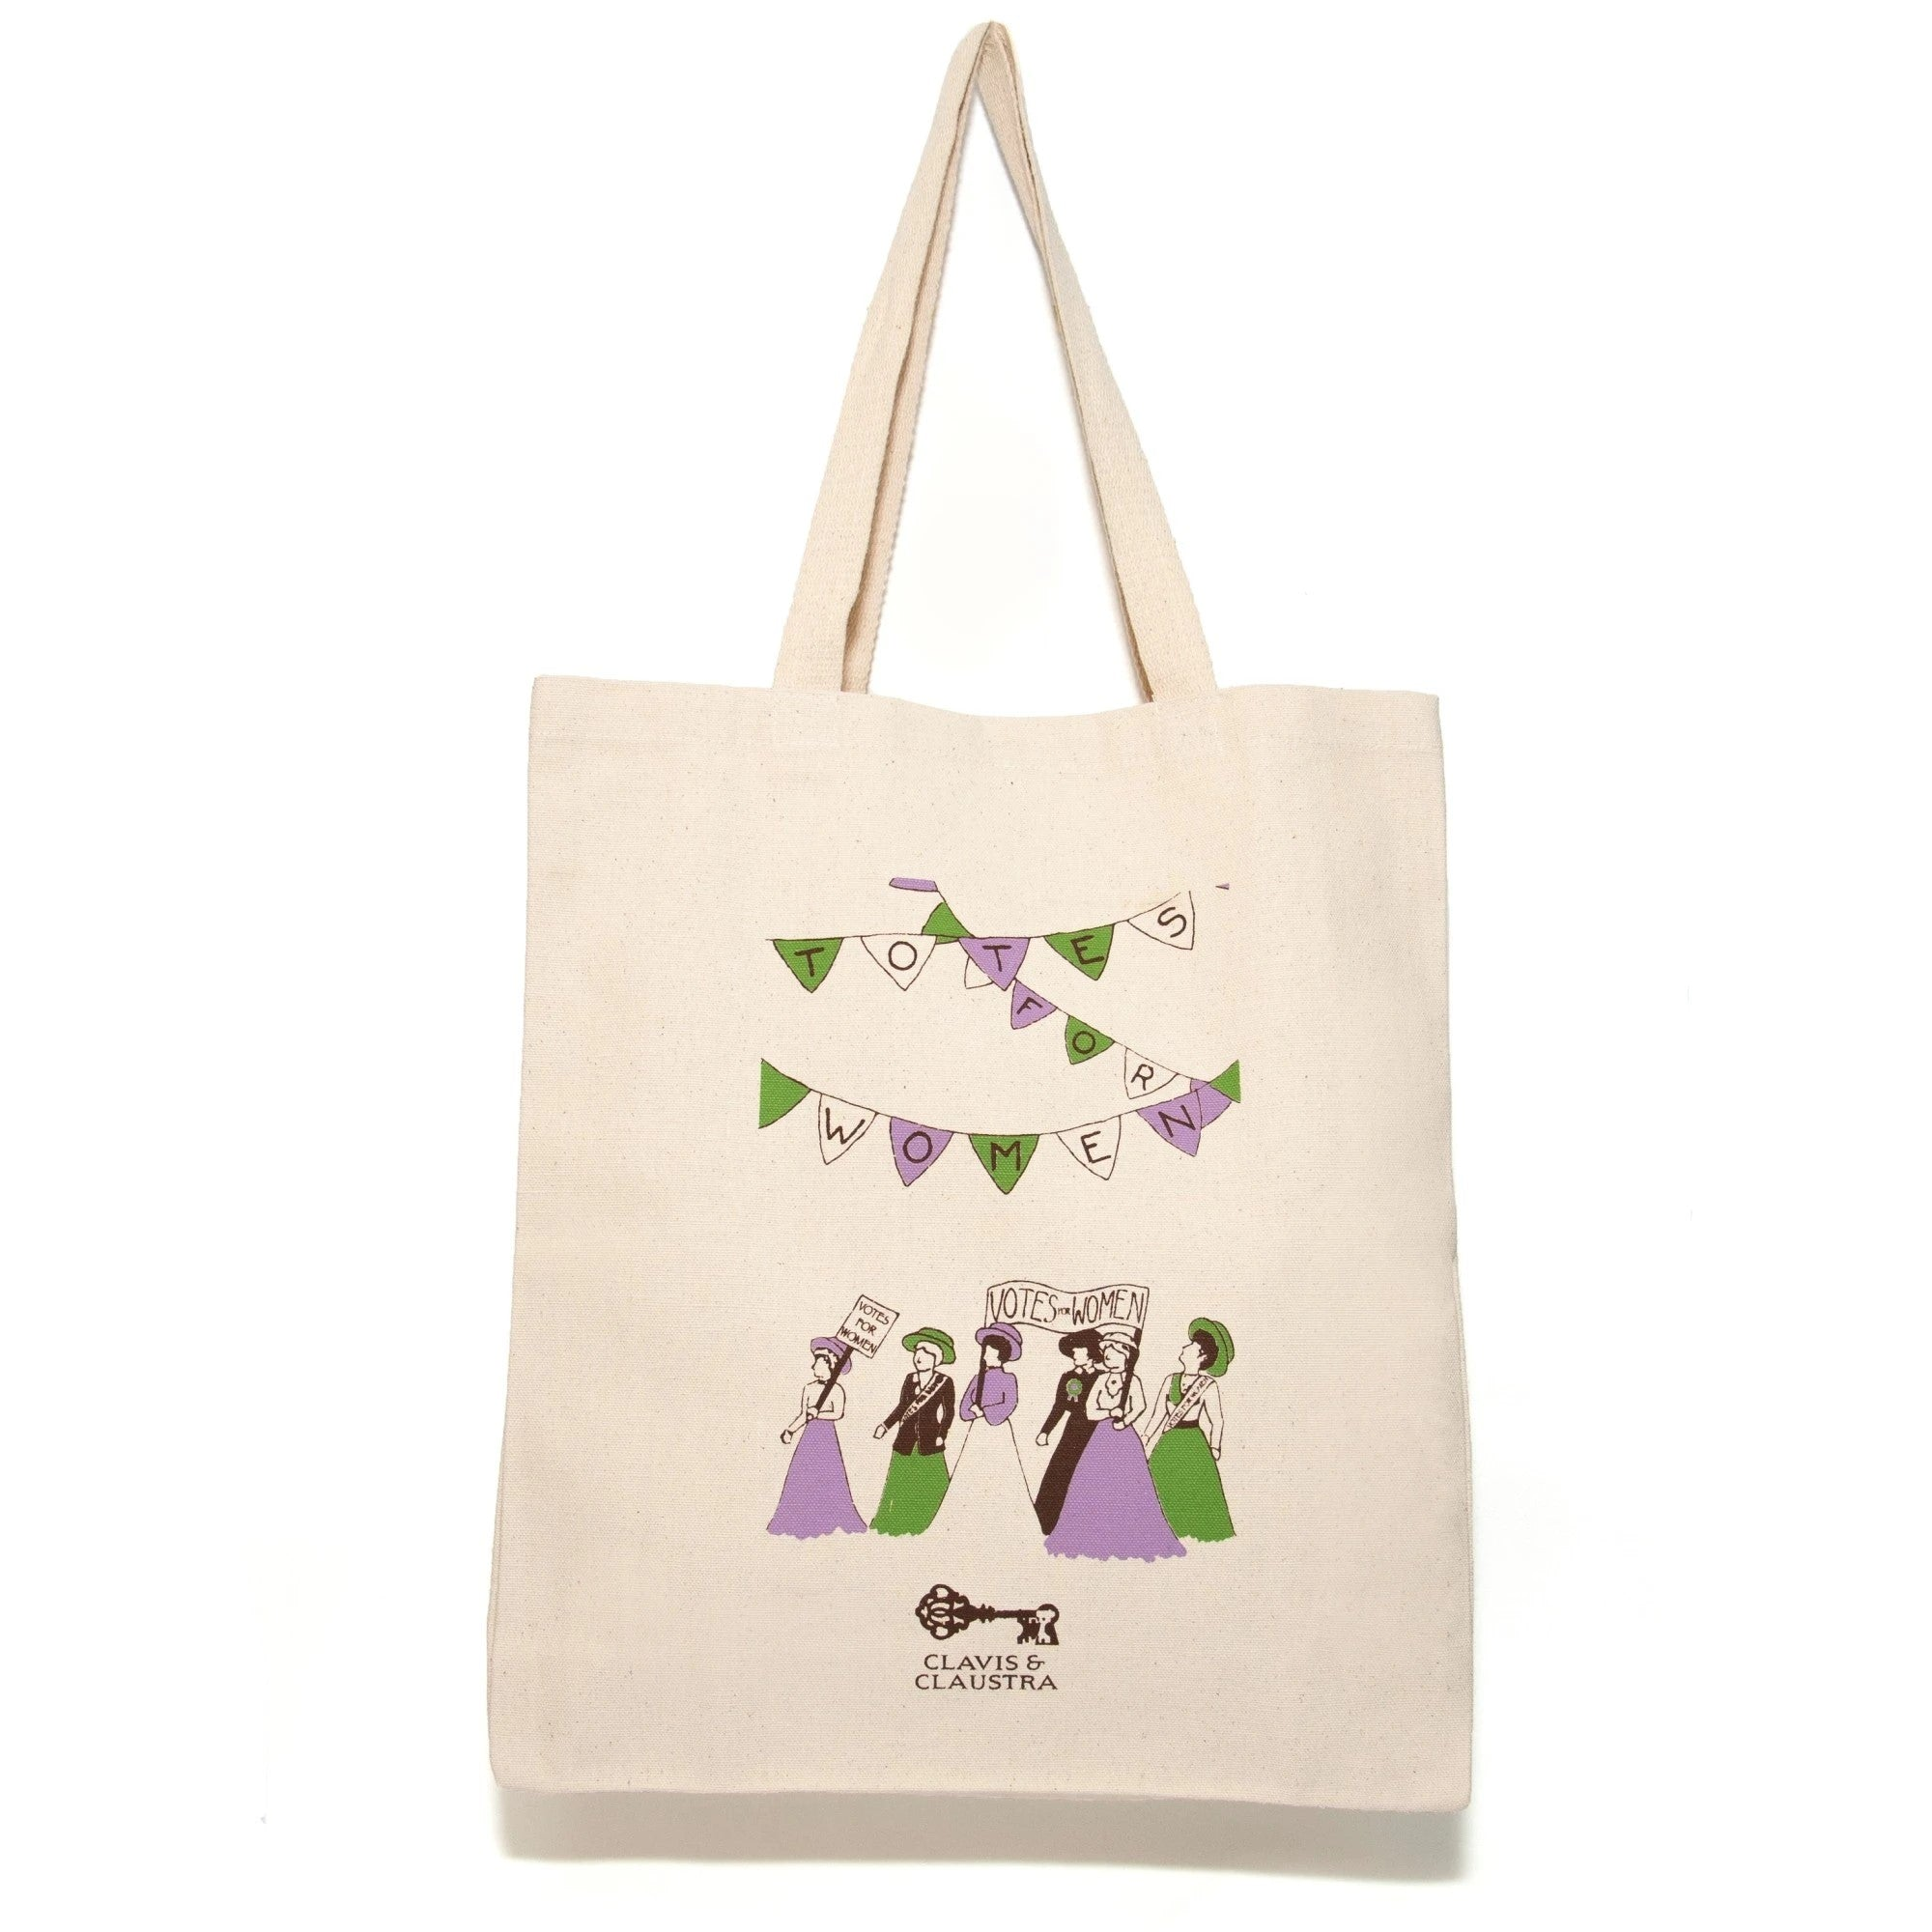 'Totes For Women' Cotton Tote Bag